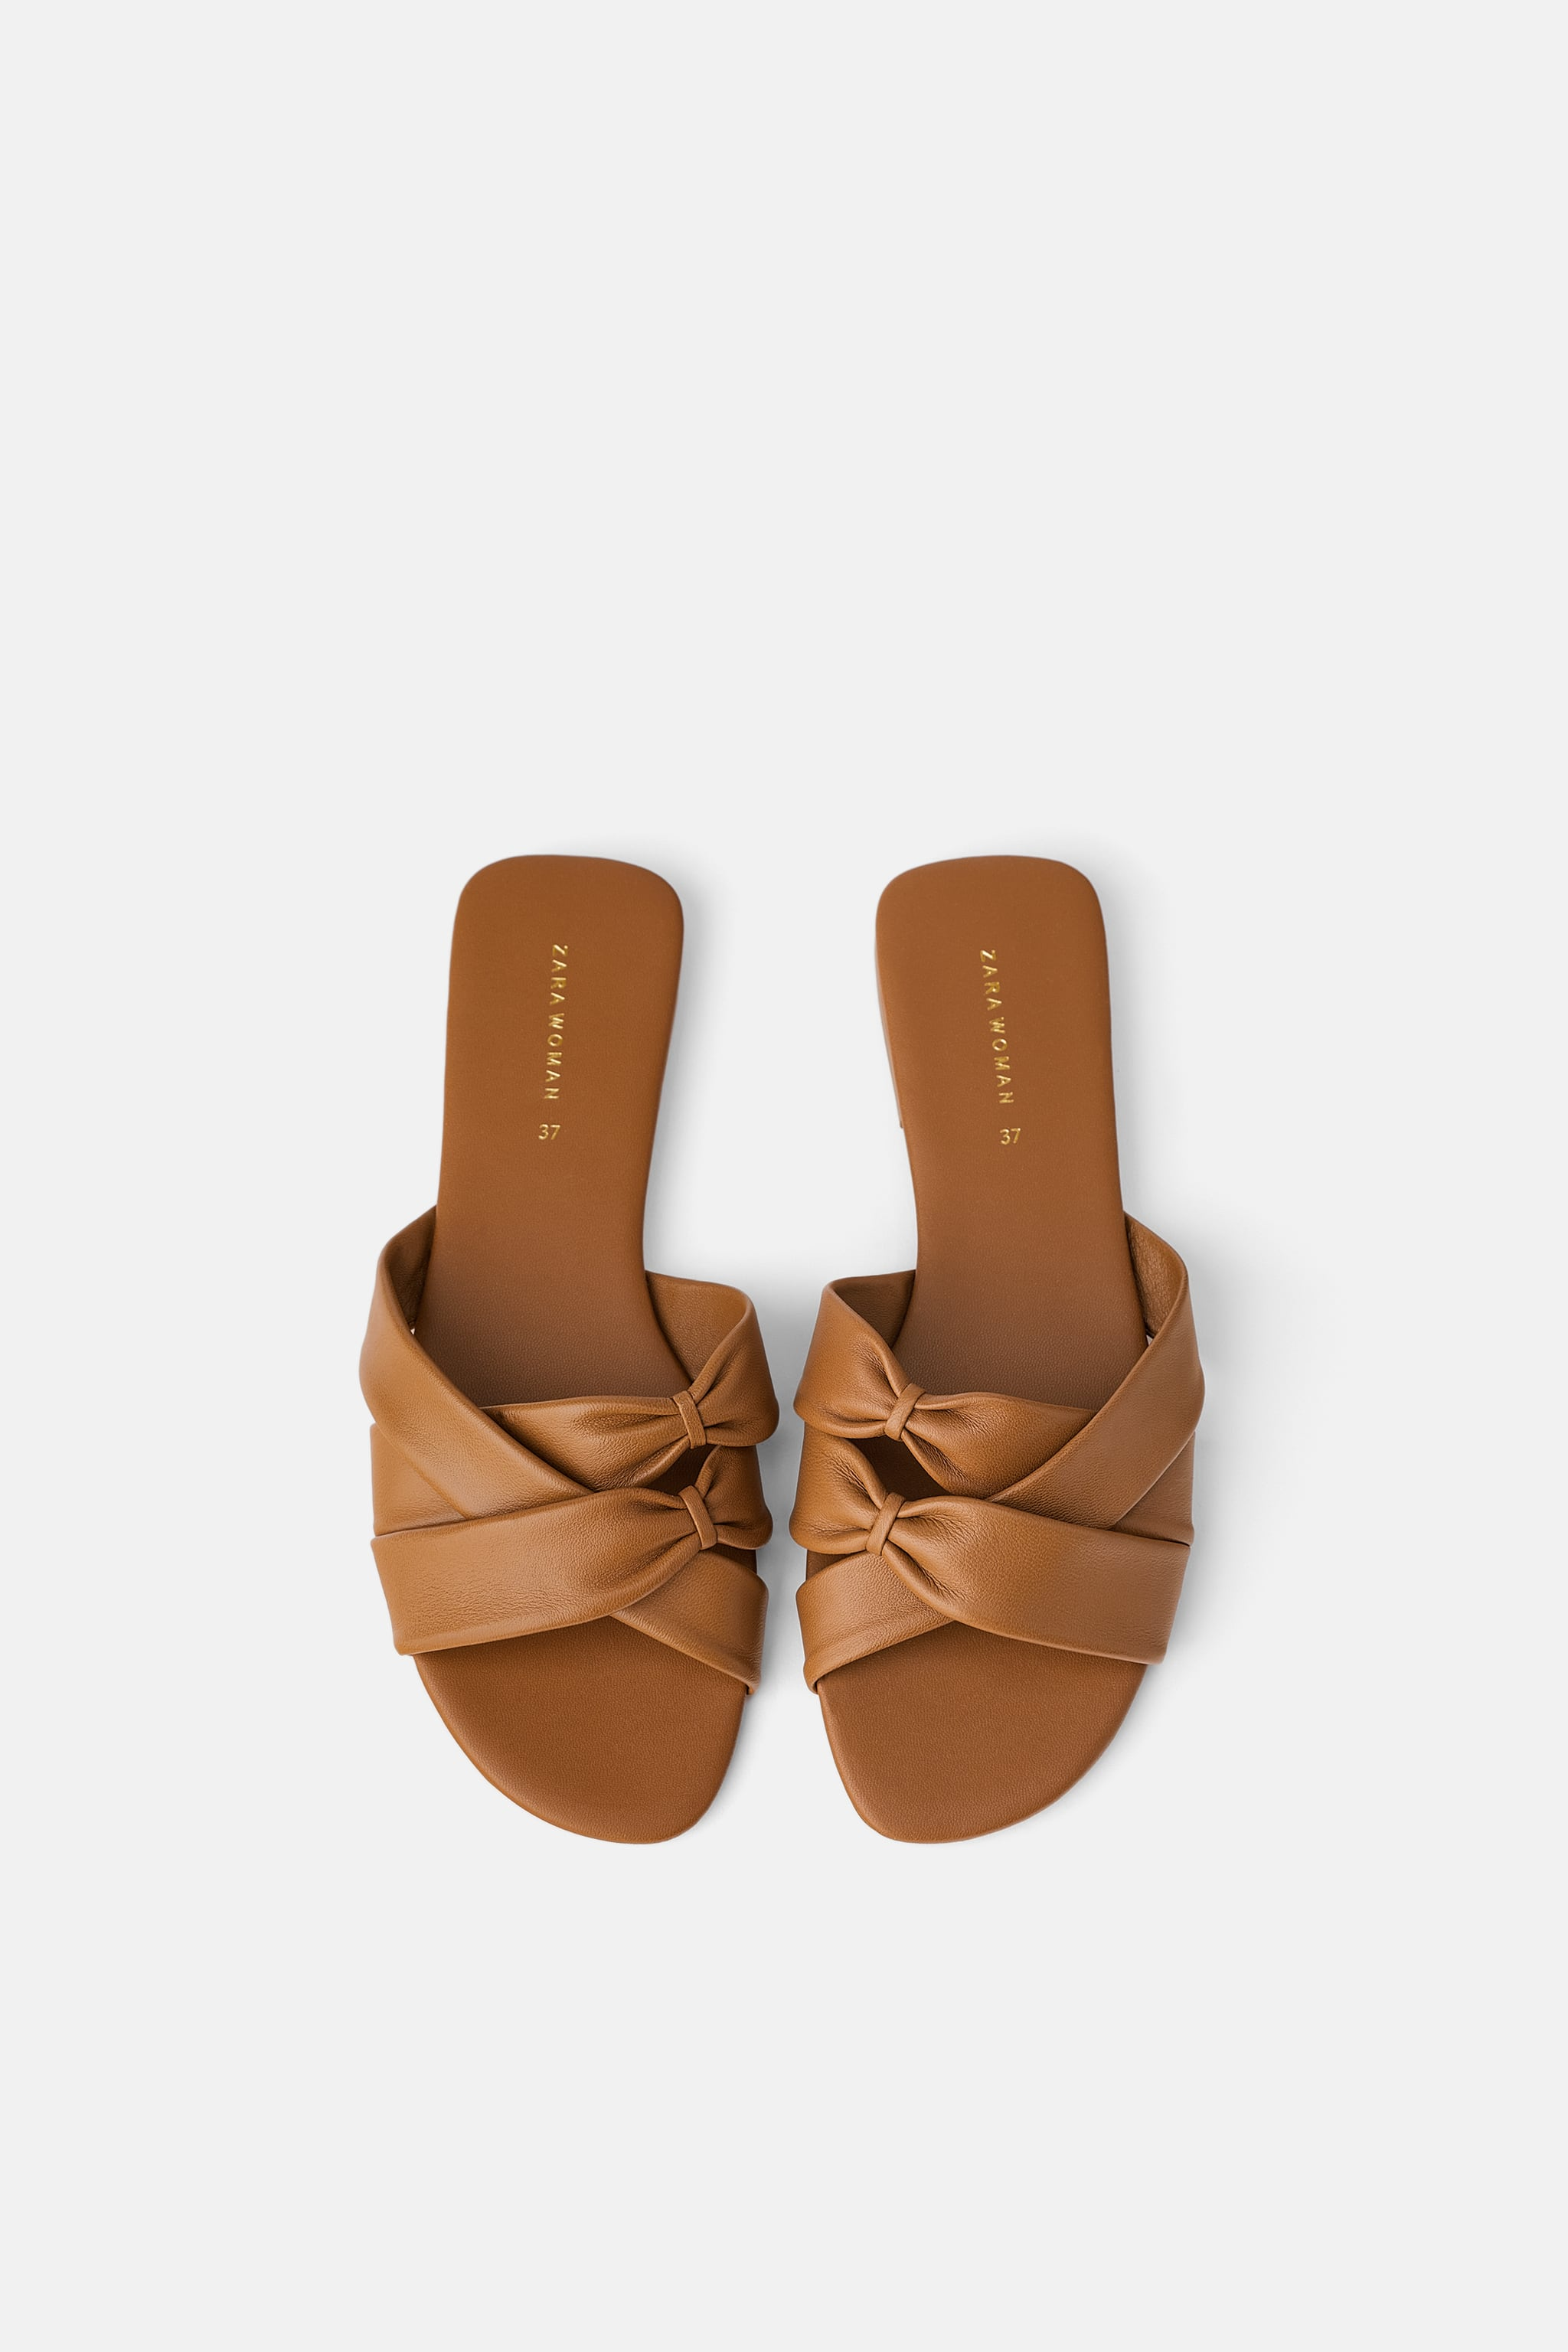 5b446dace30b Zara LOW-HEELED STRAPPY LEATHER SANDALS